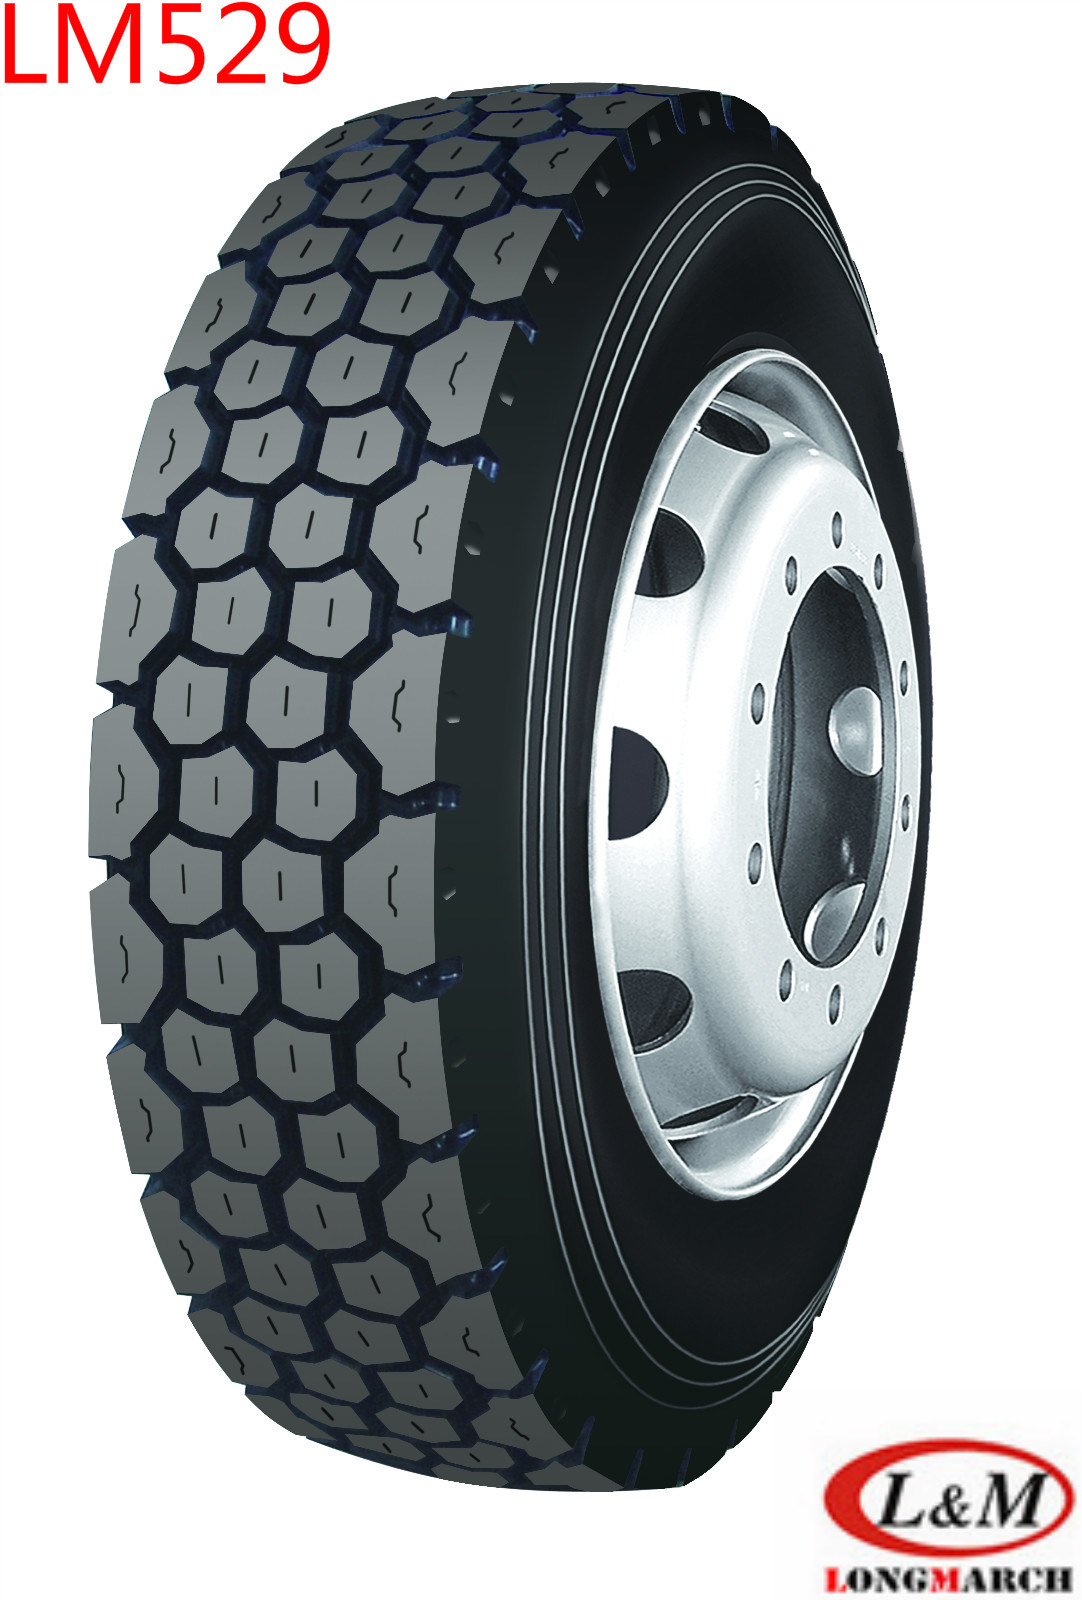 1200R20 Longmarch Drive/Trailer Position Tire with Tube (LM529)